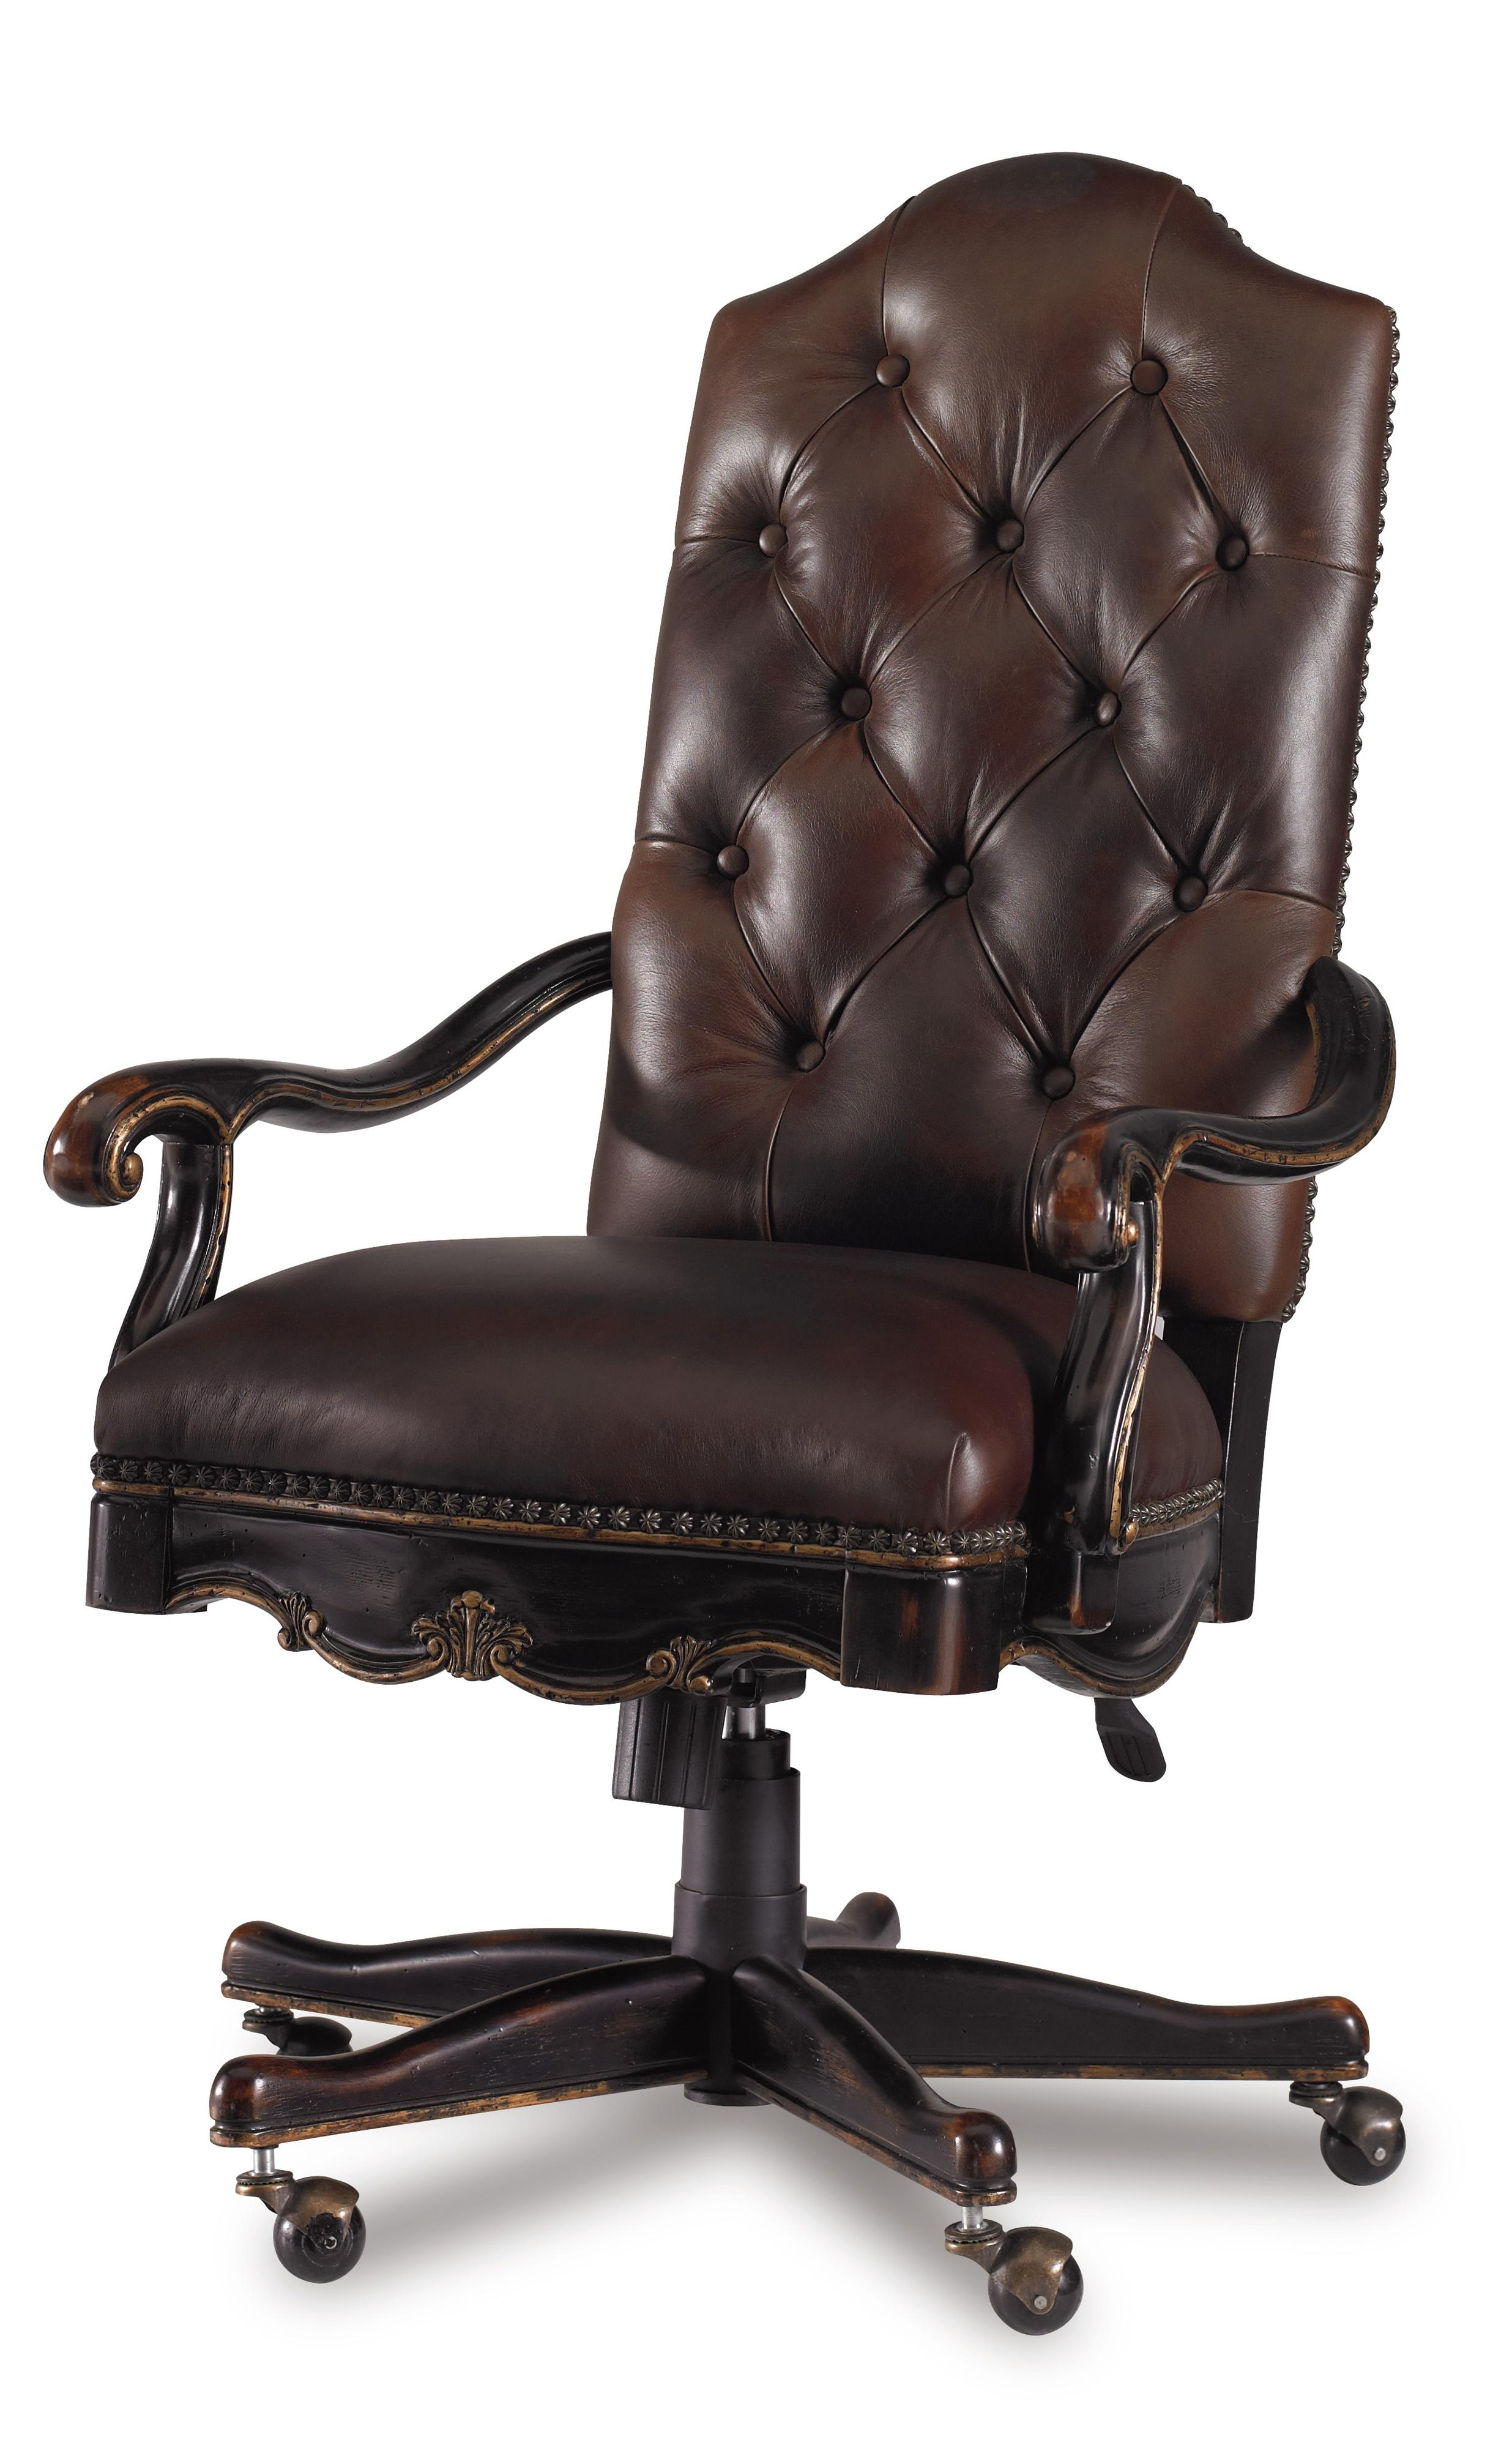 Modern Executive Office Chairs Regarding Recent Chair : Martinez Executive Tilt Leather Office Chair Big And Tall (View 8 of 20)